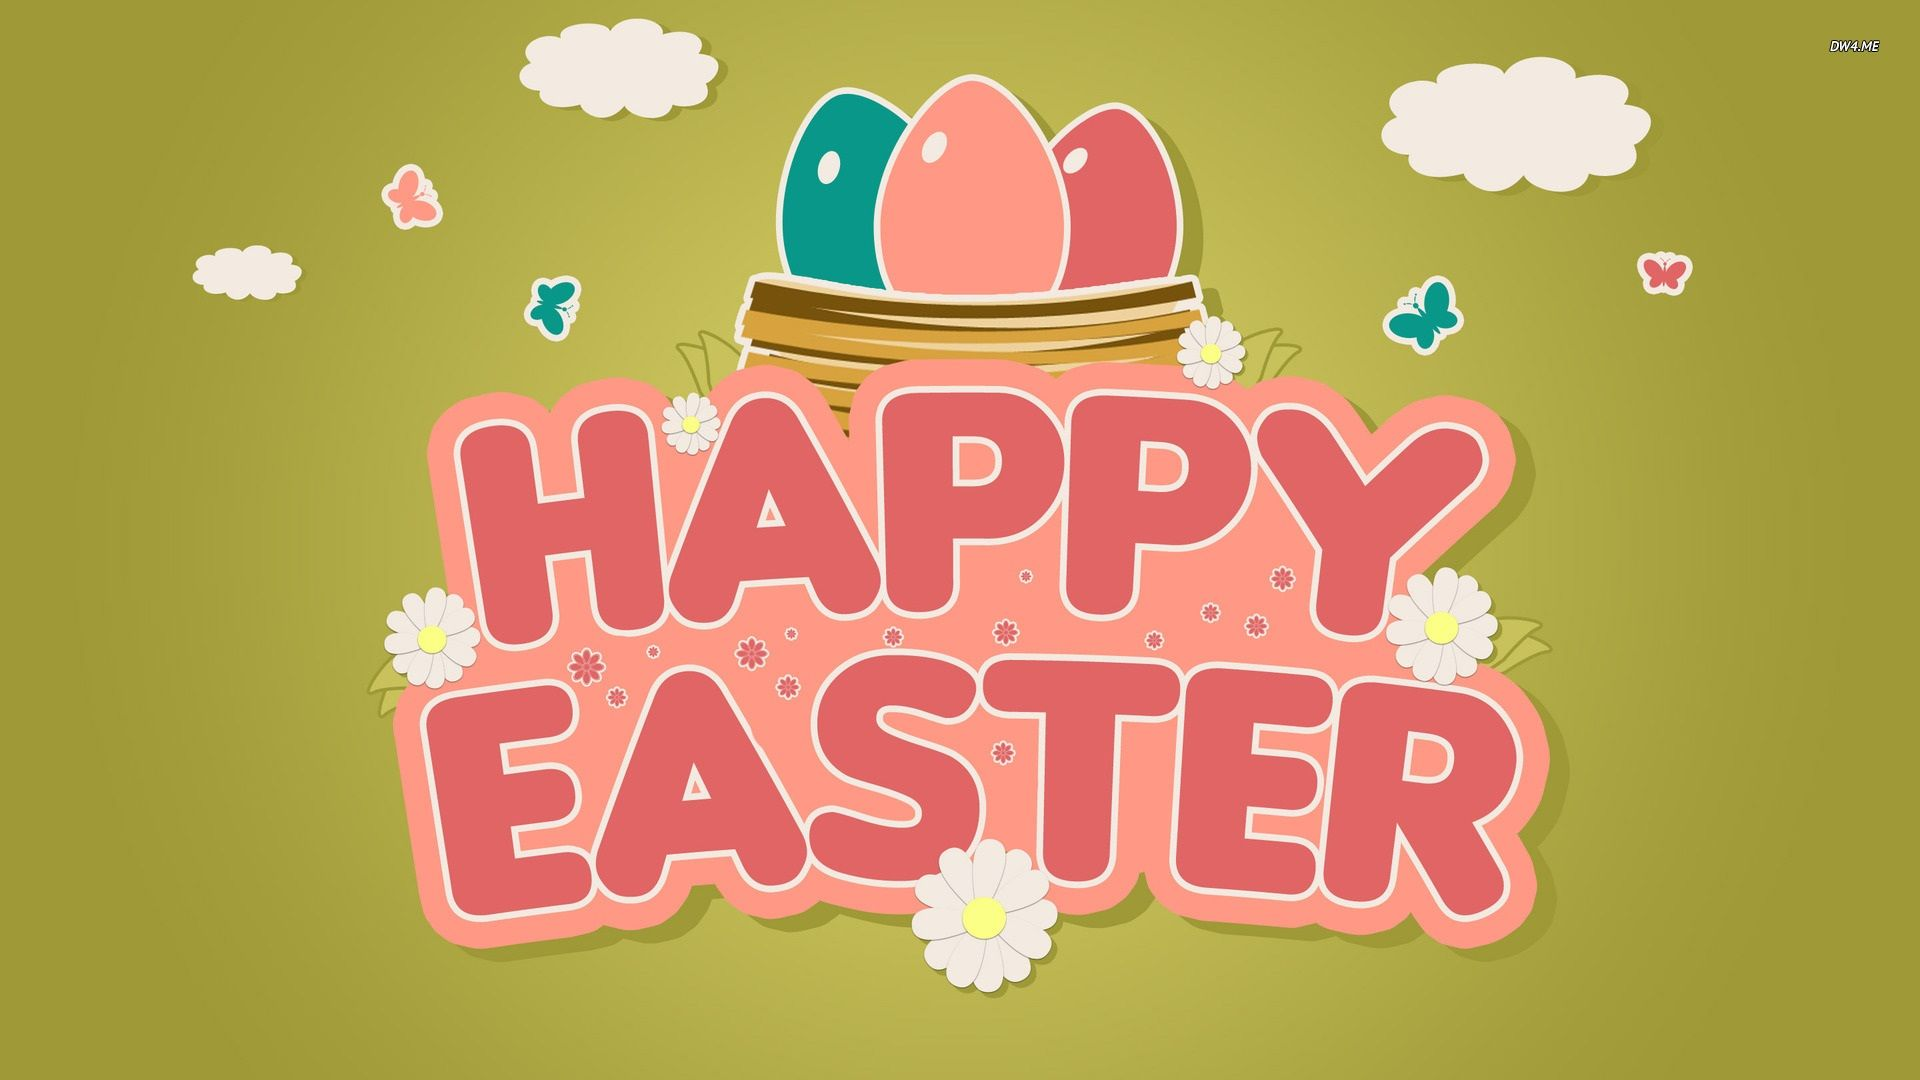 Easter 2016 Card Greetings Easter Sunday Greetings Images